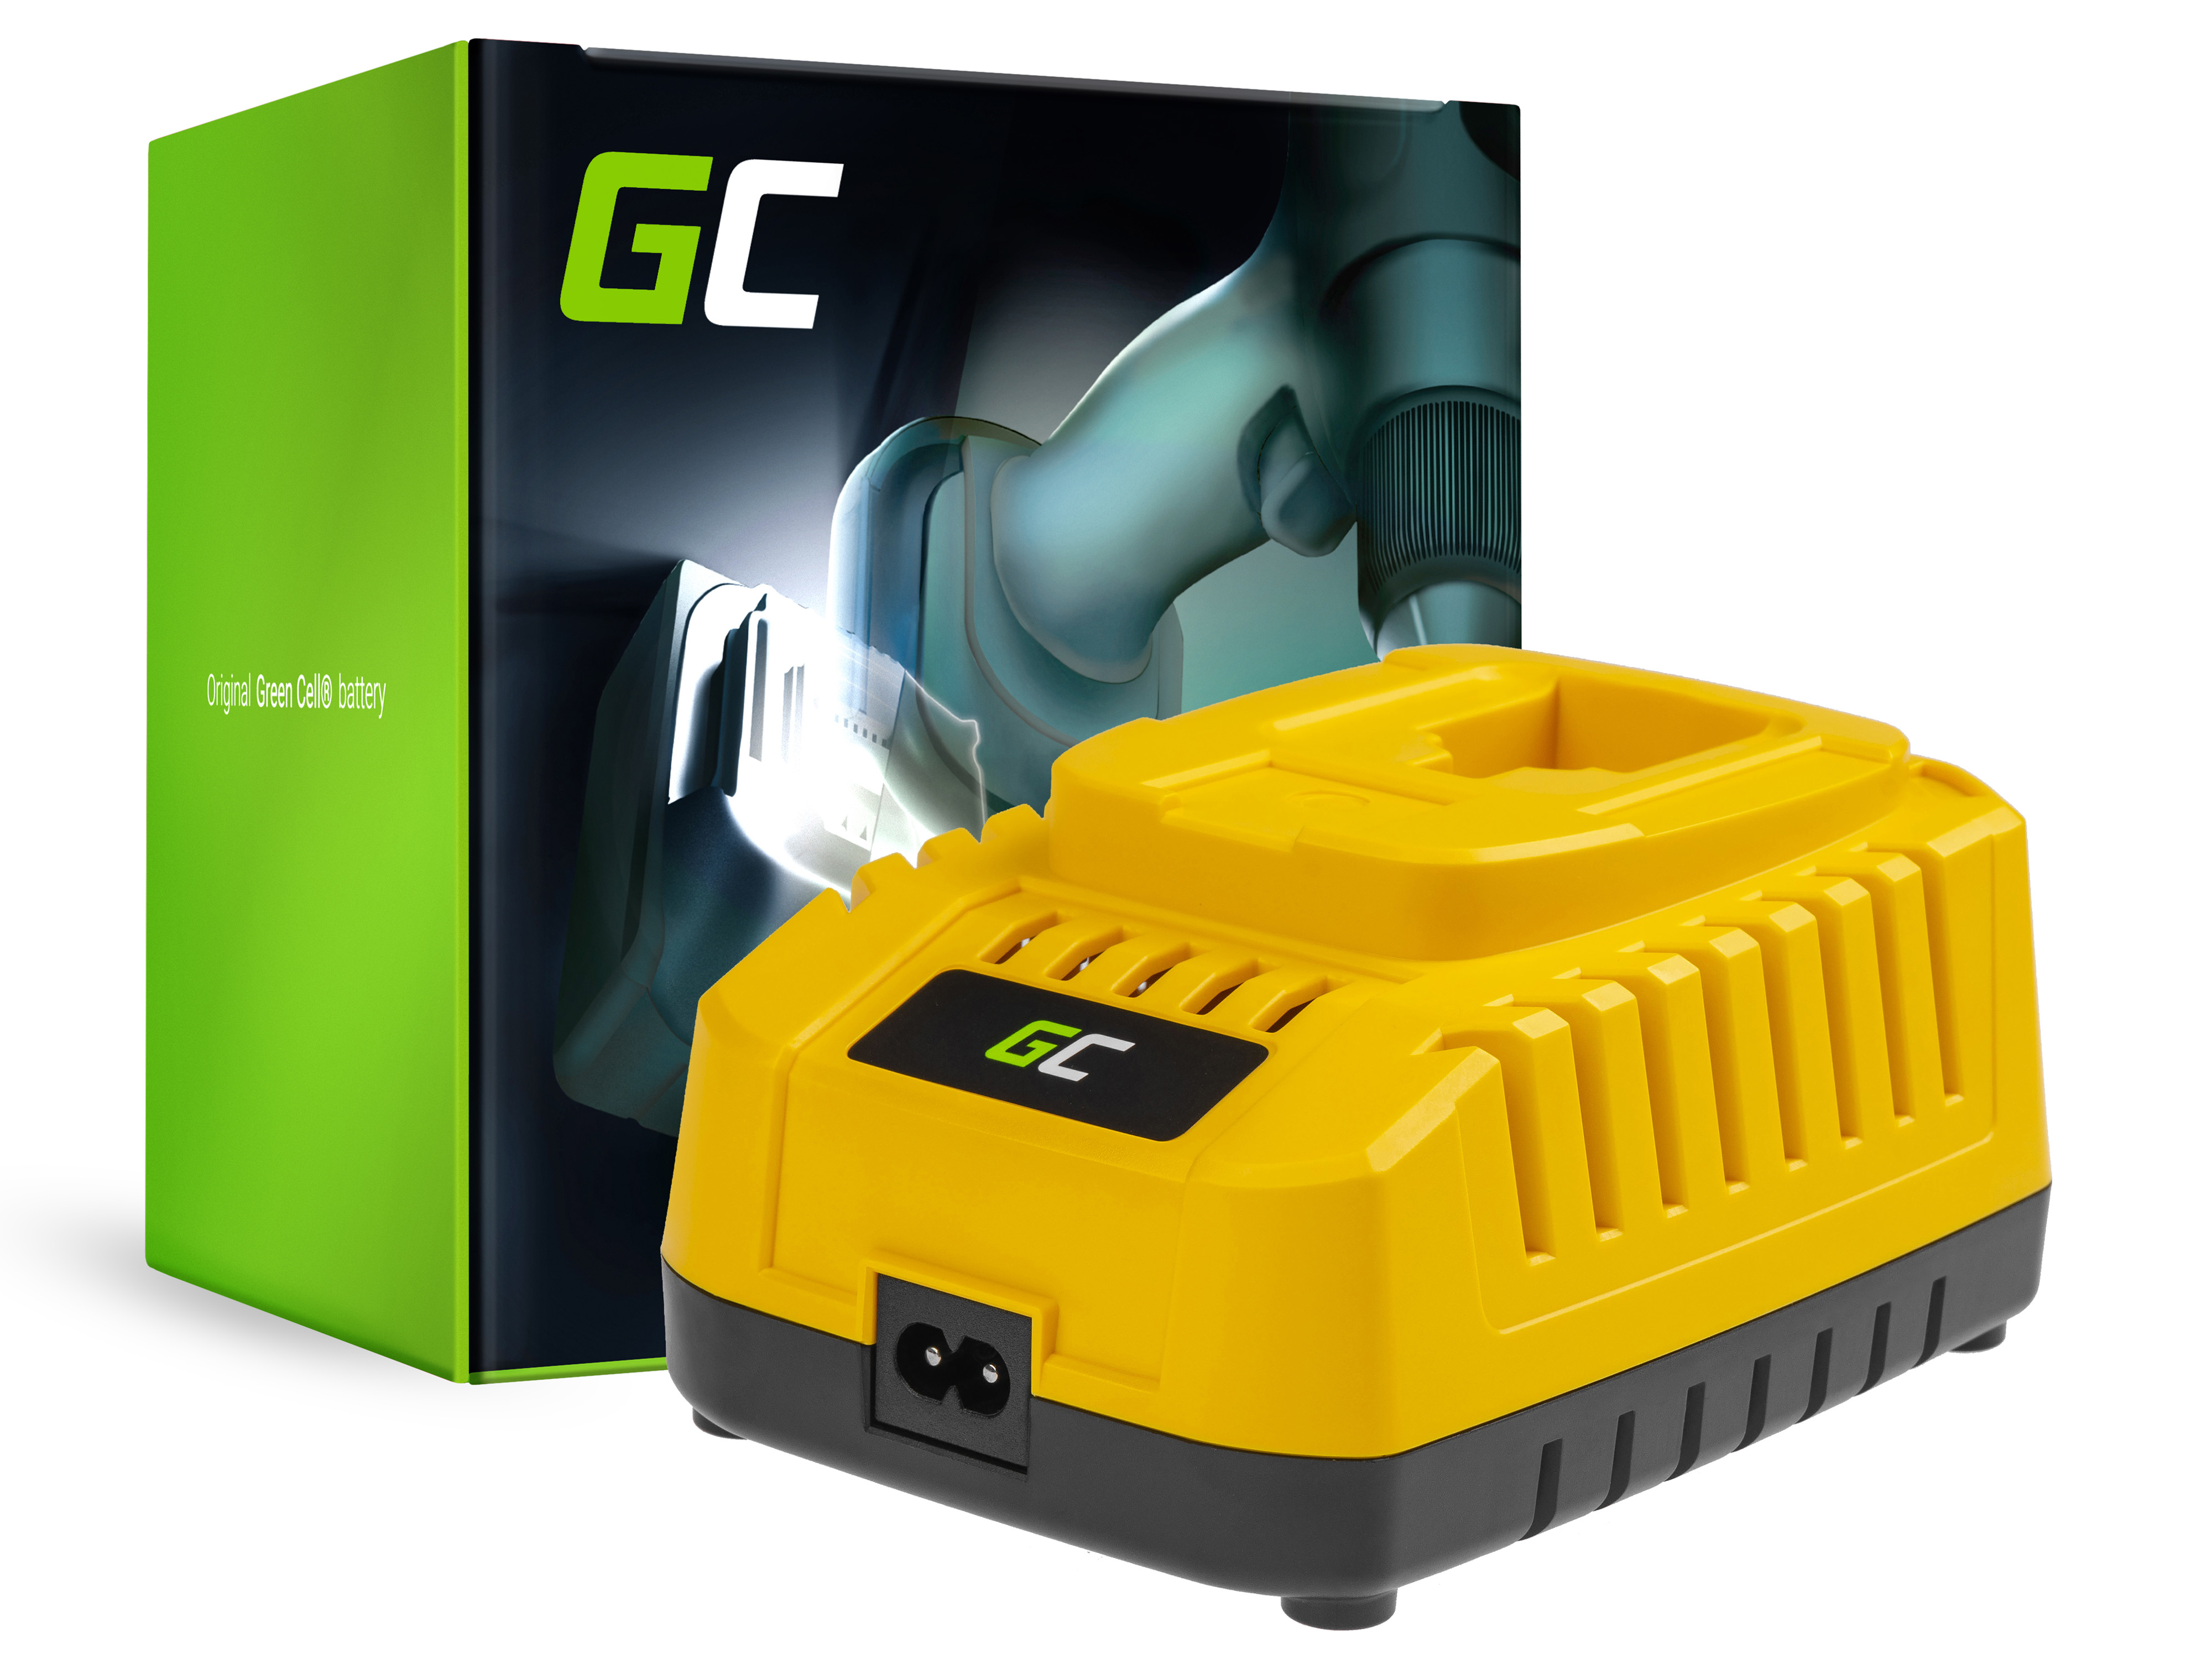 Green Cell ® Power Tool Battery Charger SFC-7/18 for Hilti Ni-MH/Ni-CD SF120A SFB120 SFB123 SFB125 SID121 TCD12